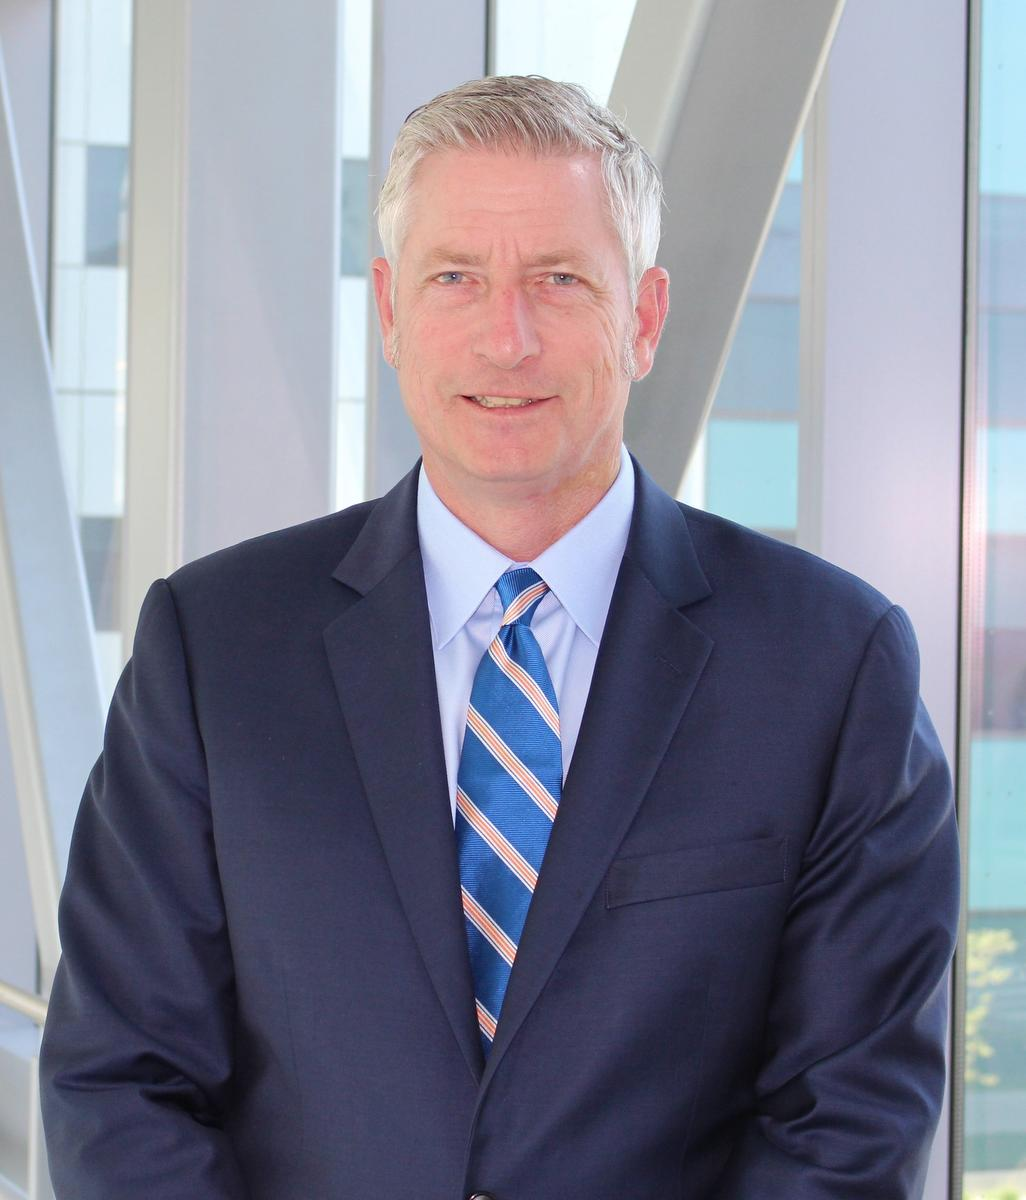 Eric Vandewall, CEO of Joseph Brant Hospital, Burlington